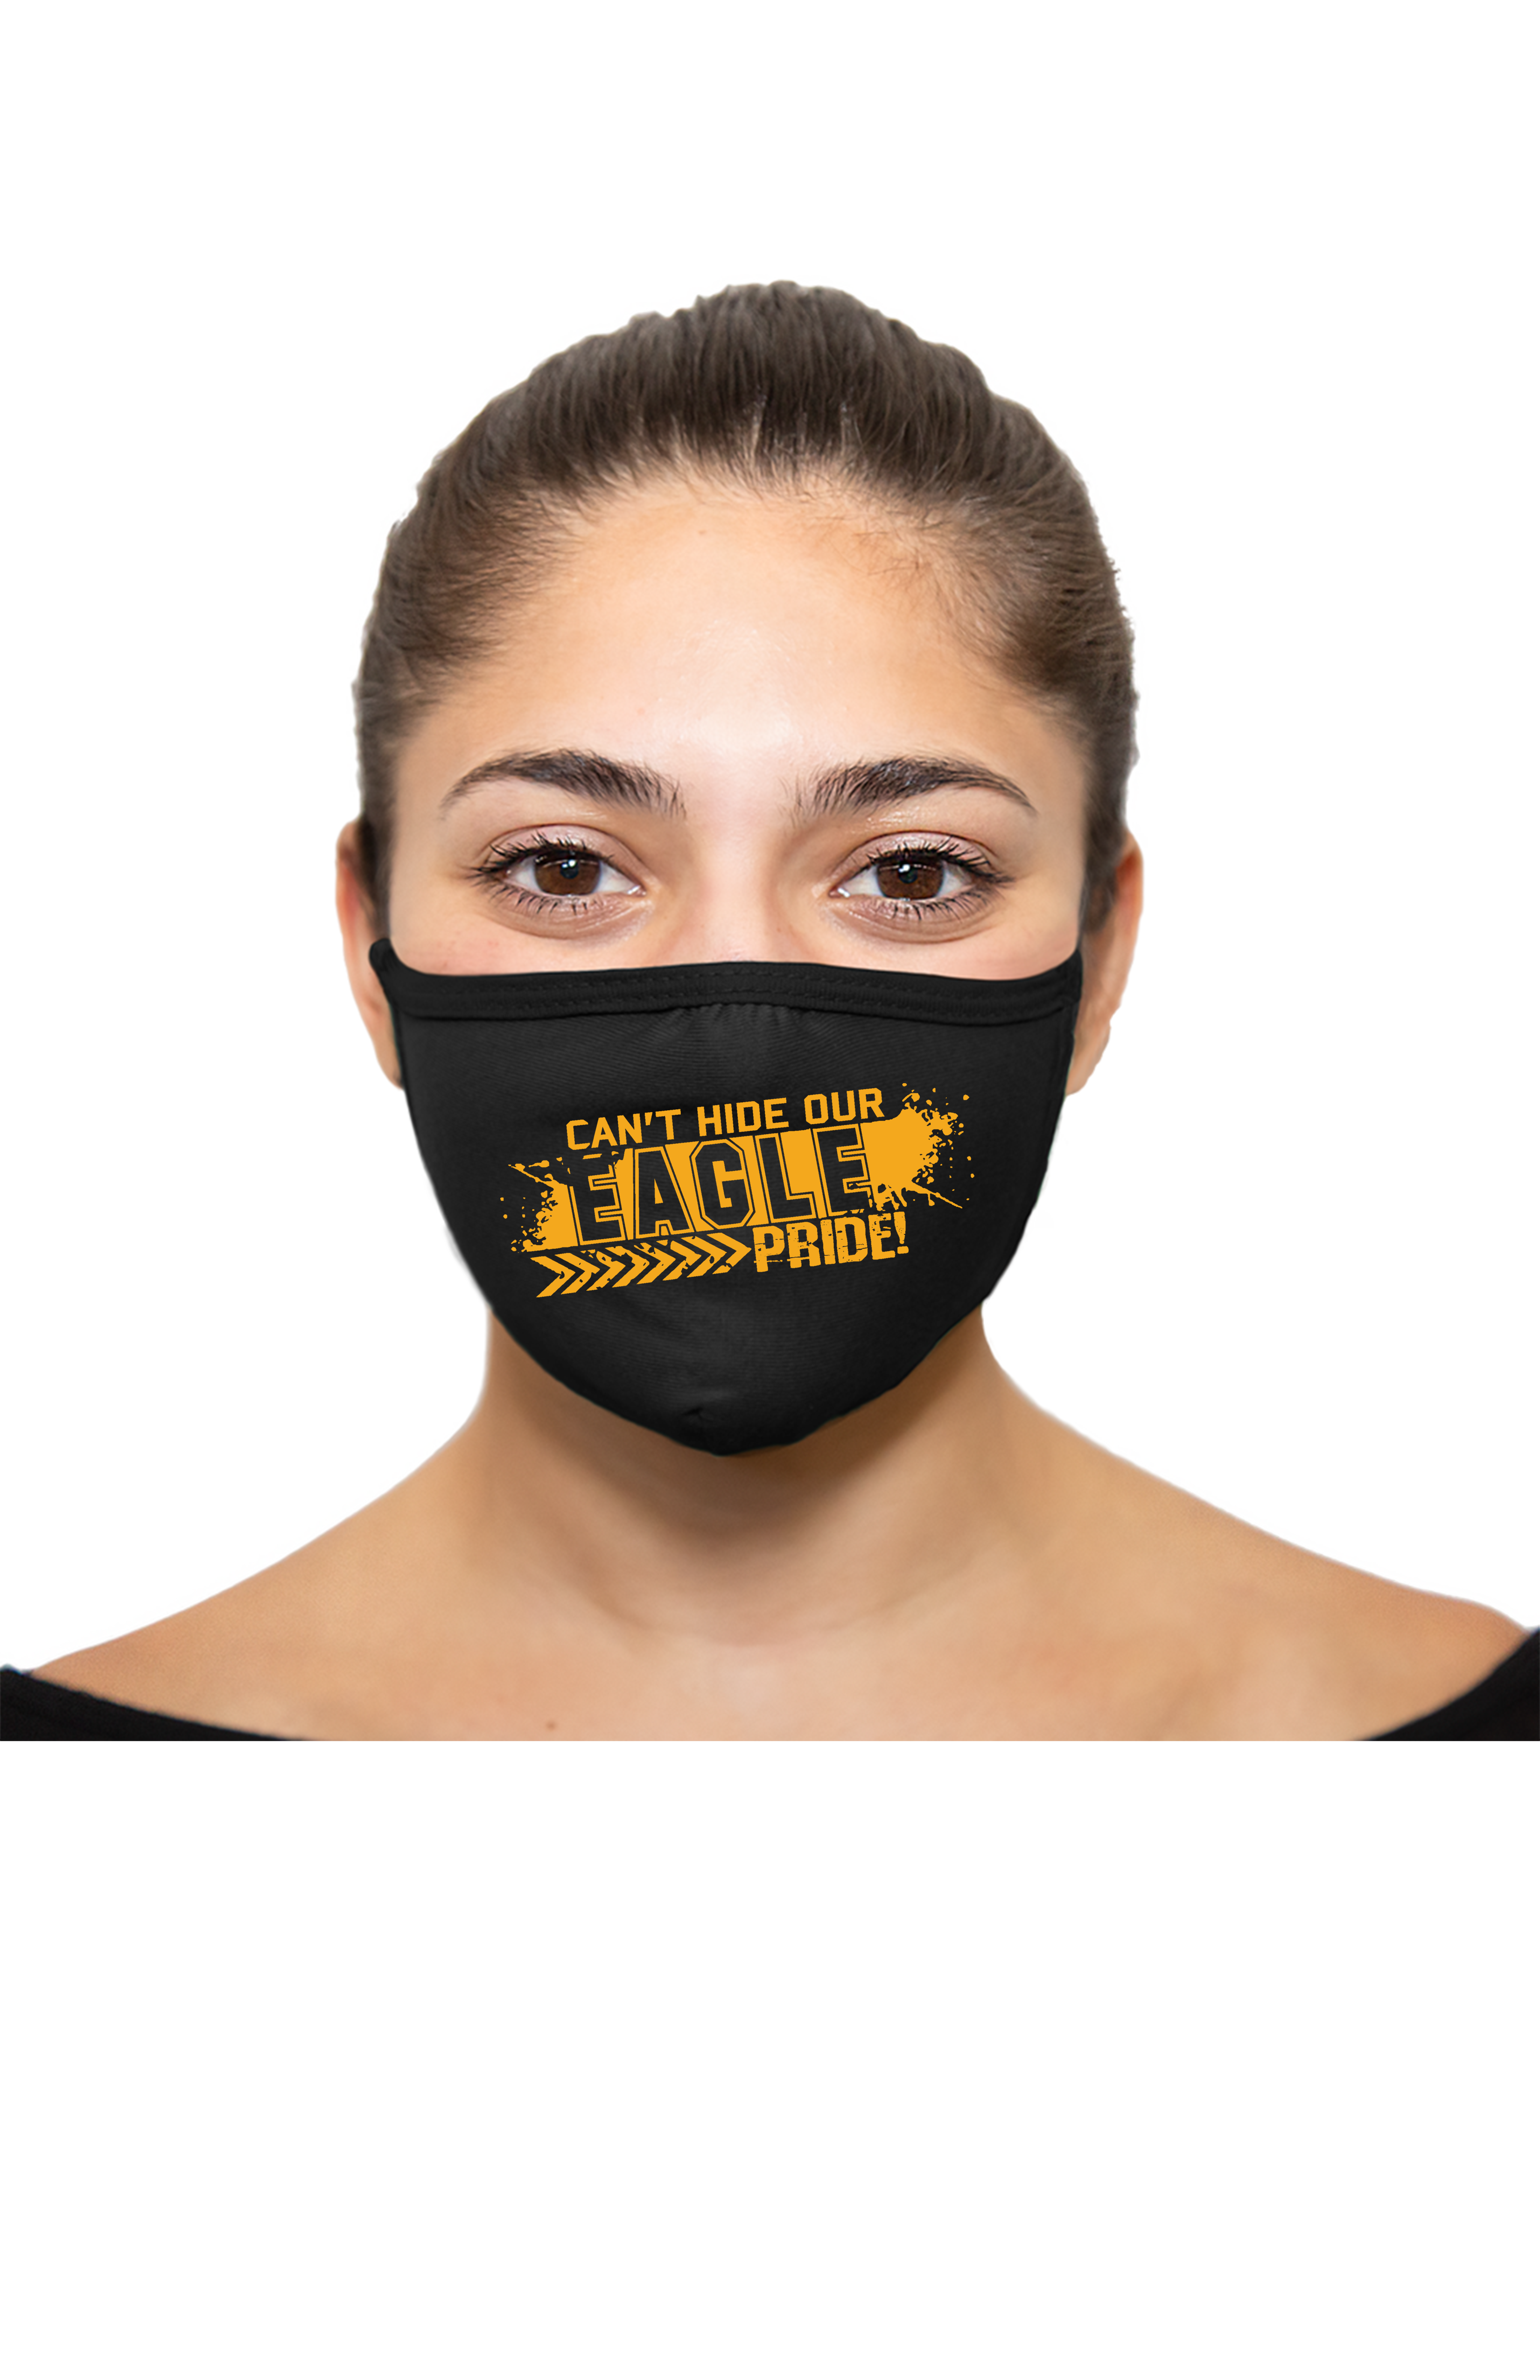 Can't Hide Our Eagle Pride Face Covering - Black